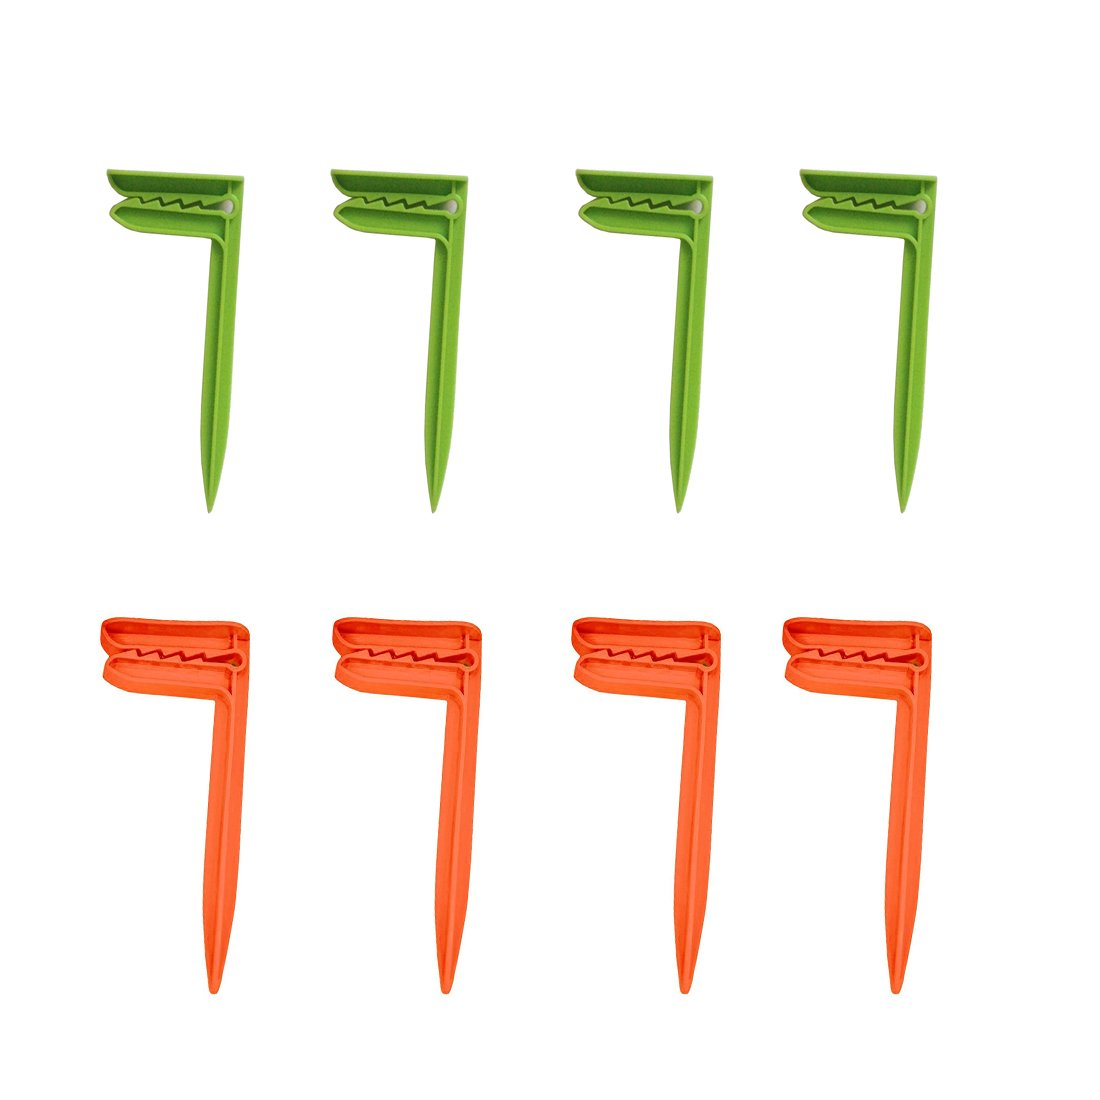 Wenosda Beach Towel Anchor Stakes Clips Blanket Picnic Fasten Pegs Set for Camping Travel Beach Day Green Orange